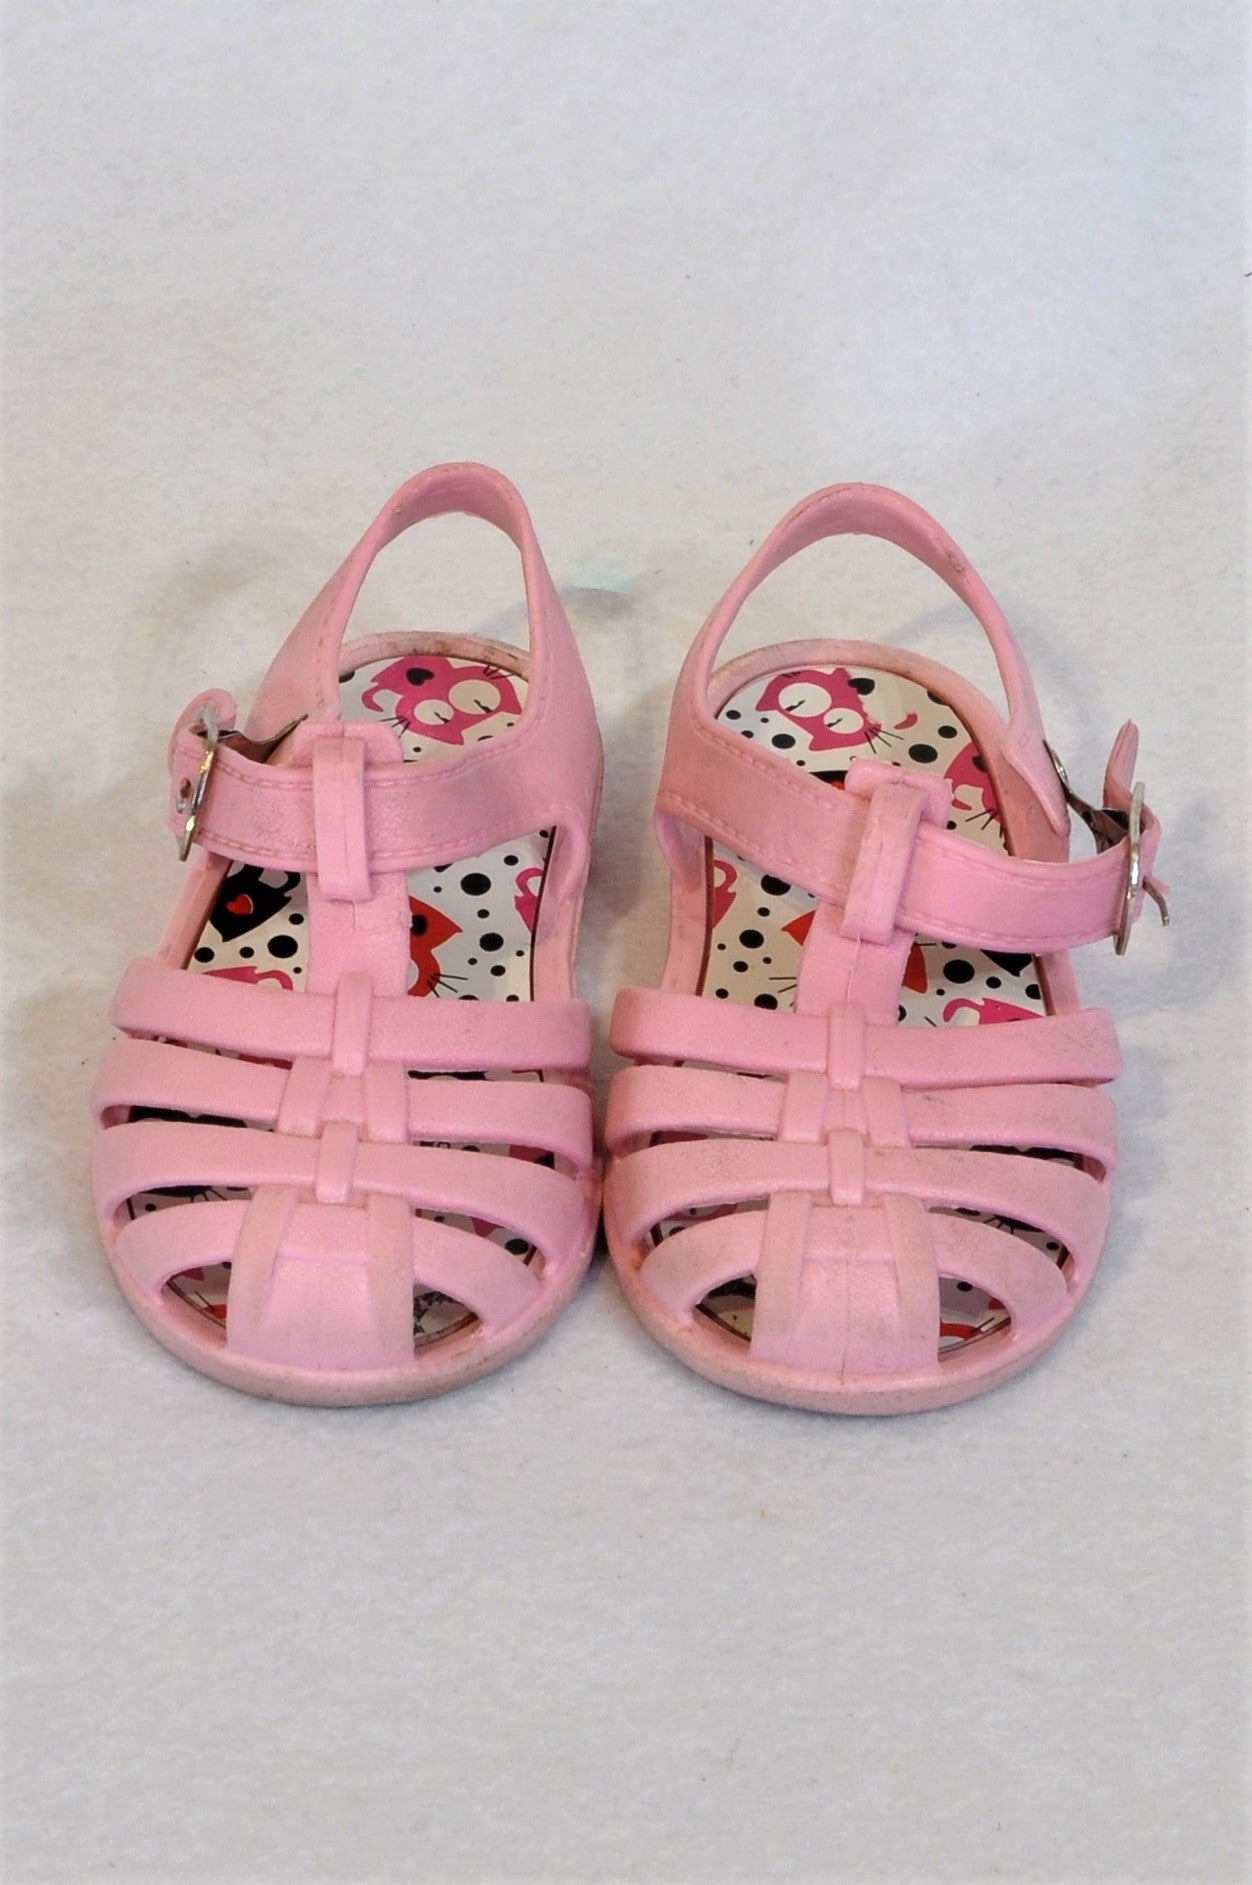 Unbranded Size 8 Pink Cat Sandals Girls 2-3 years